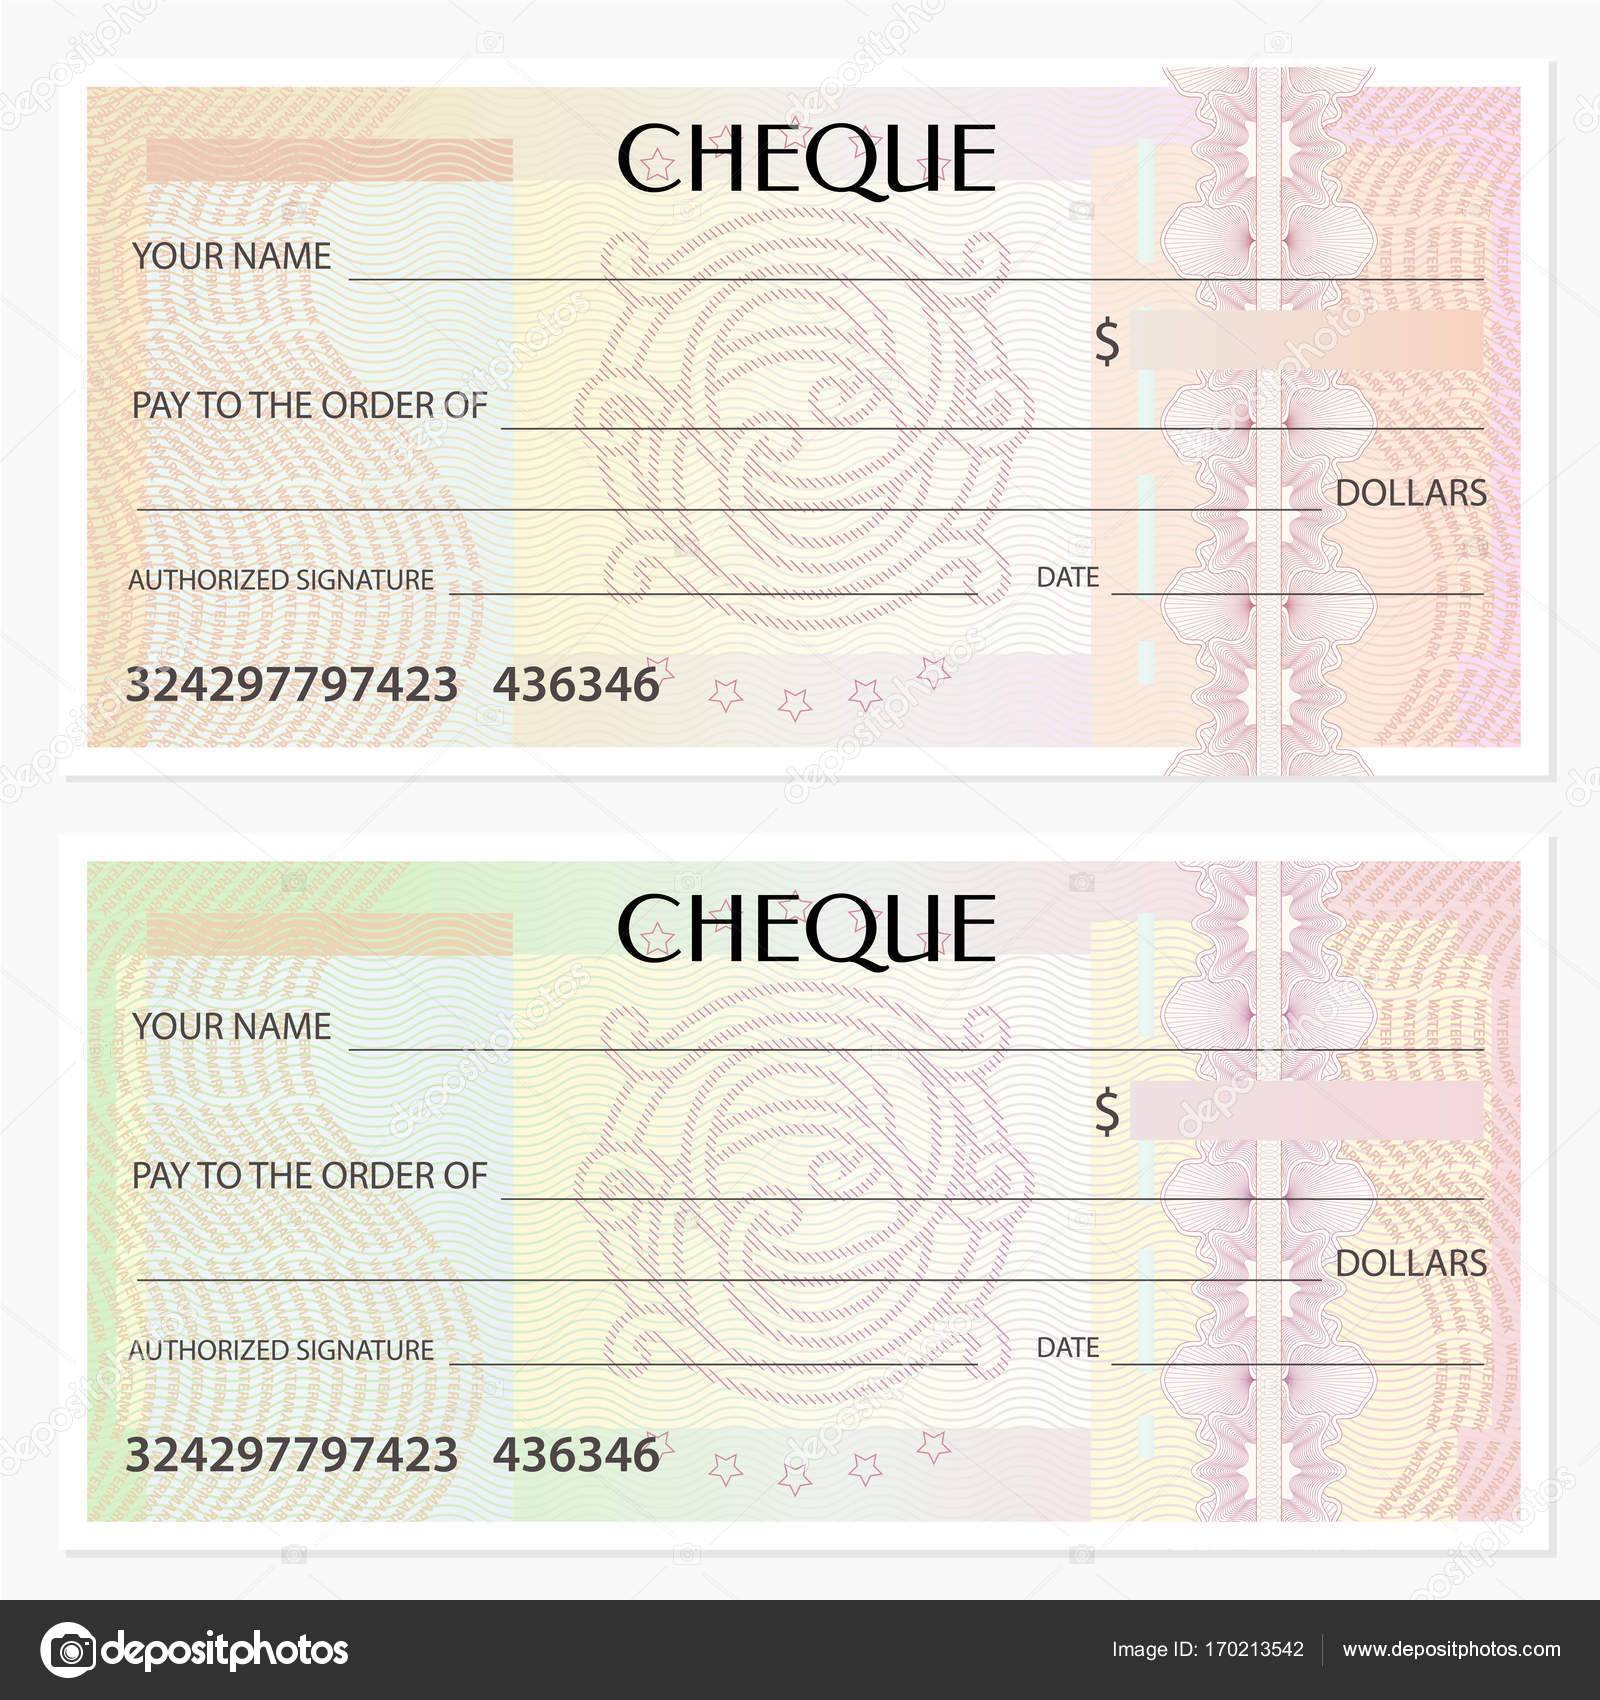 Check (cheque), Chequebook Template. Guilloche Pattern With Watermark,  Spirograph. Background For Banknote, Money Design, Currency, Bank Note,  Voucher, ...  Check Voucher Template